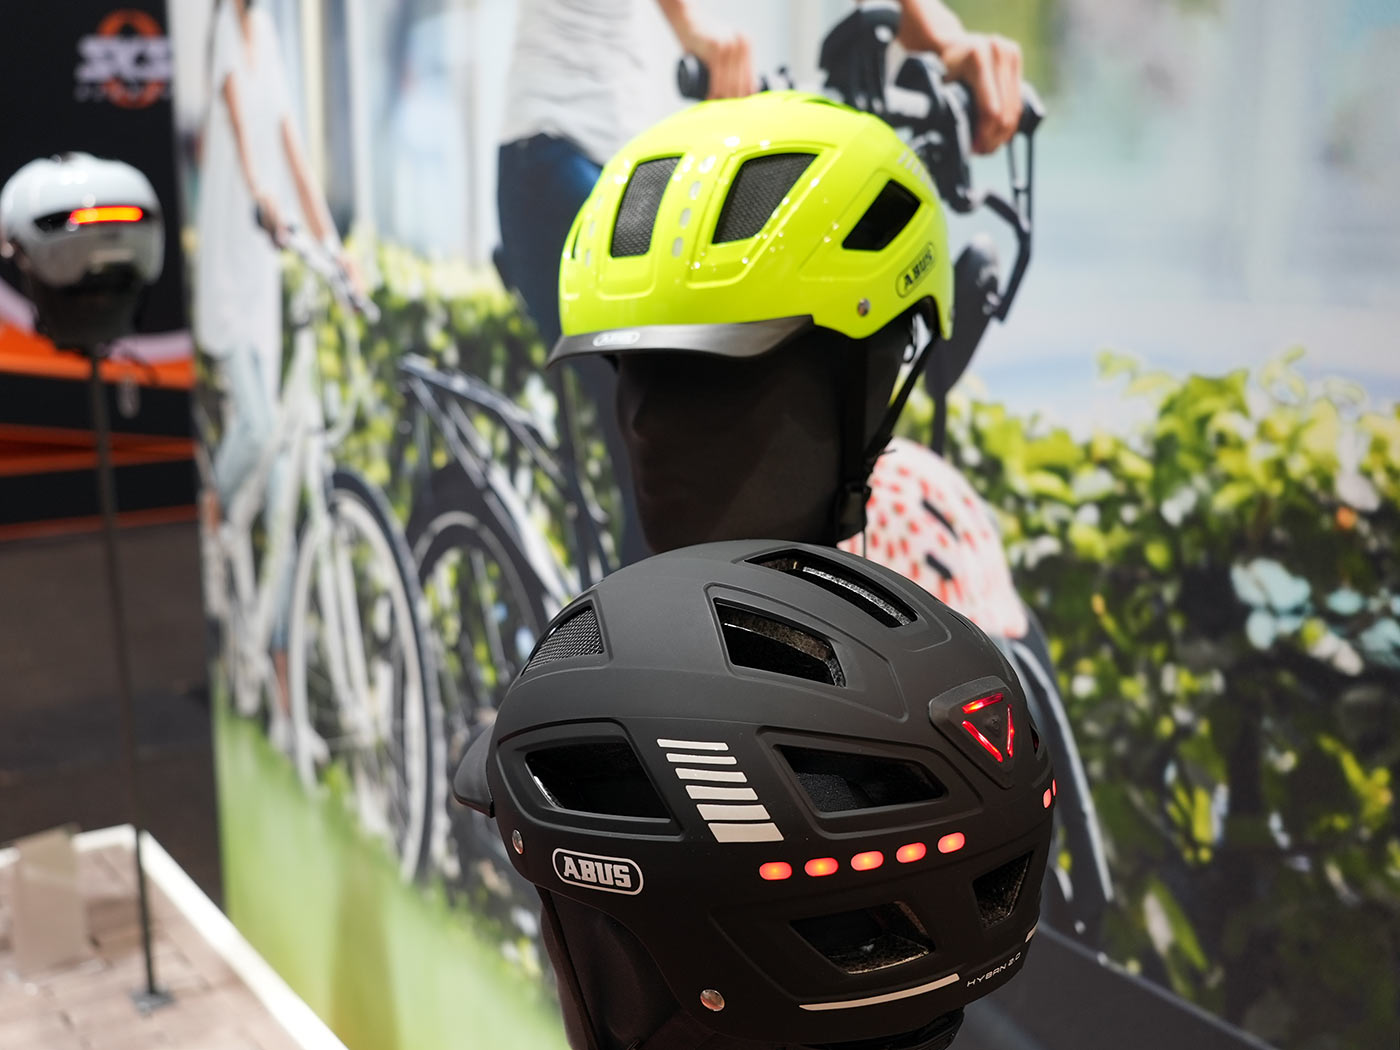 abus hyban 2 LED commuter bike helmet with integrated front and rear lights